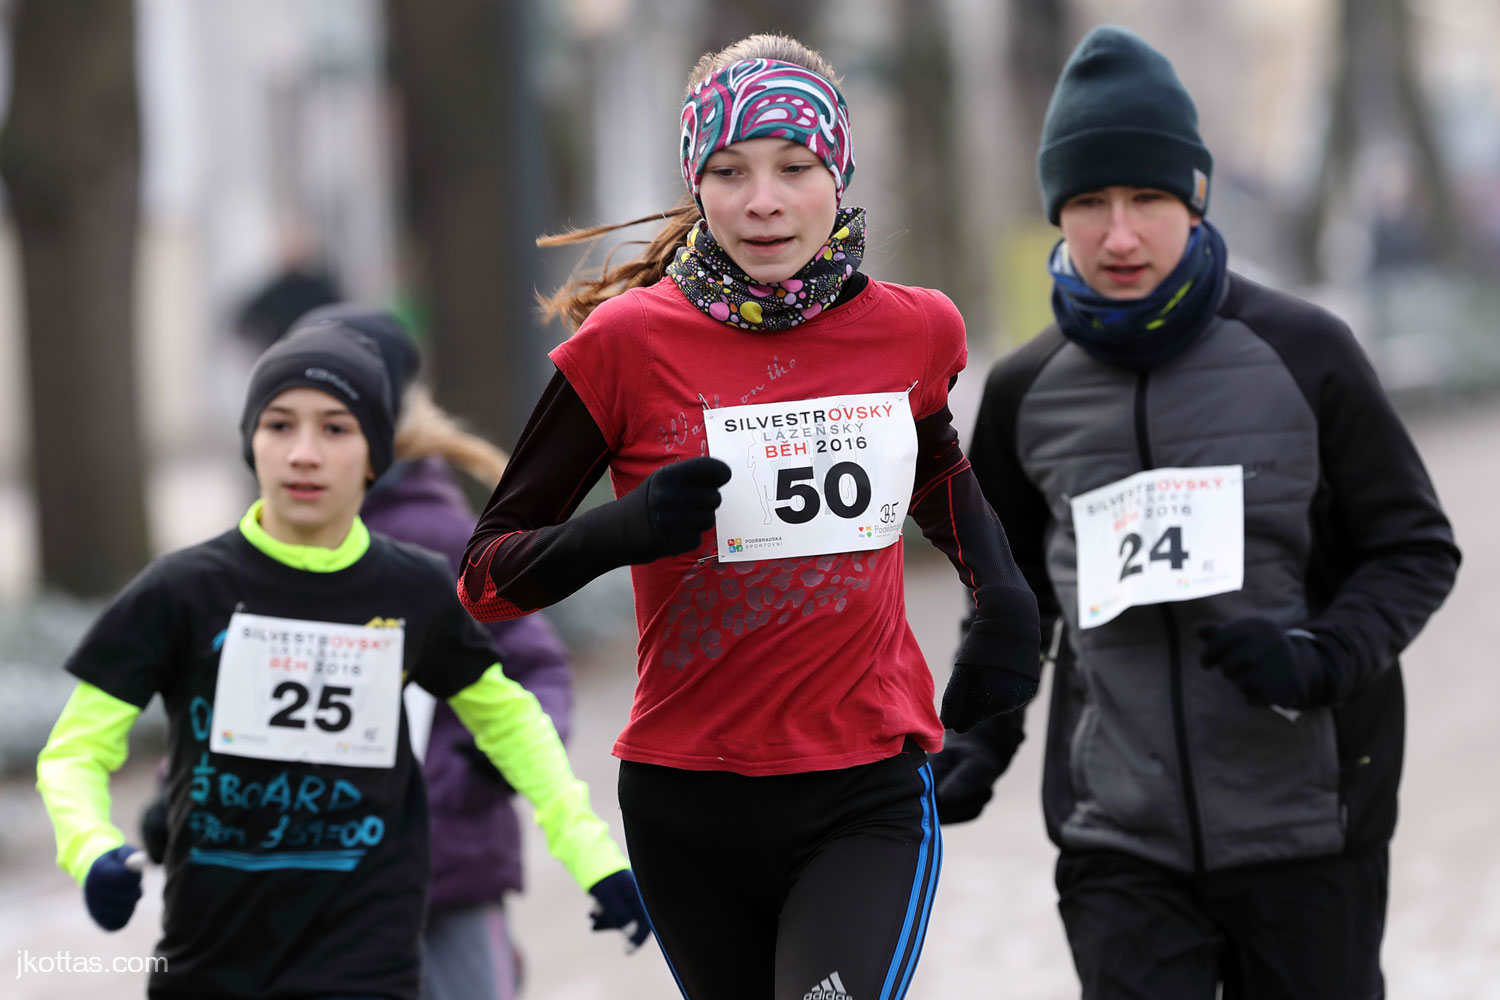 podebrady-spa-silvestr-run-23